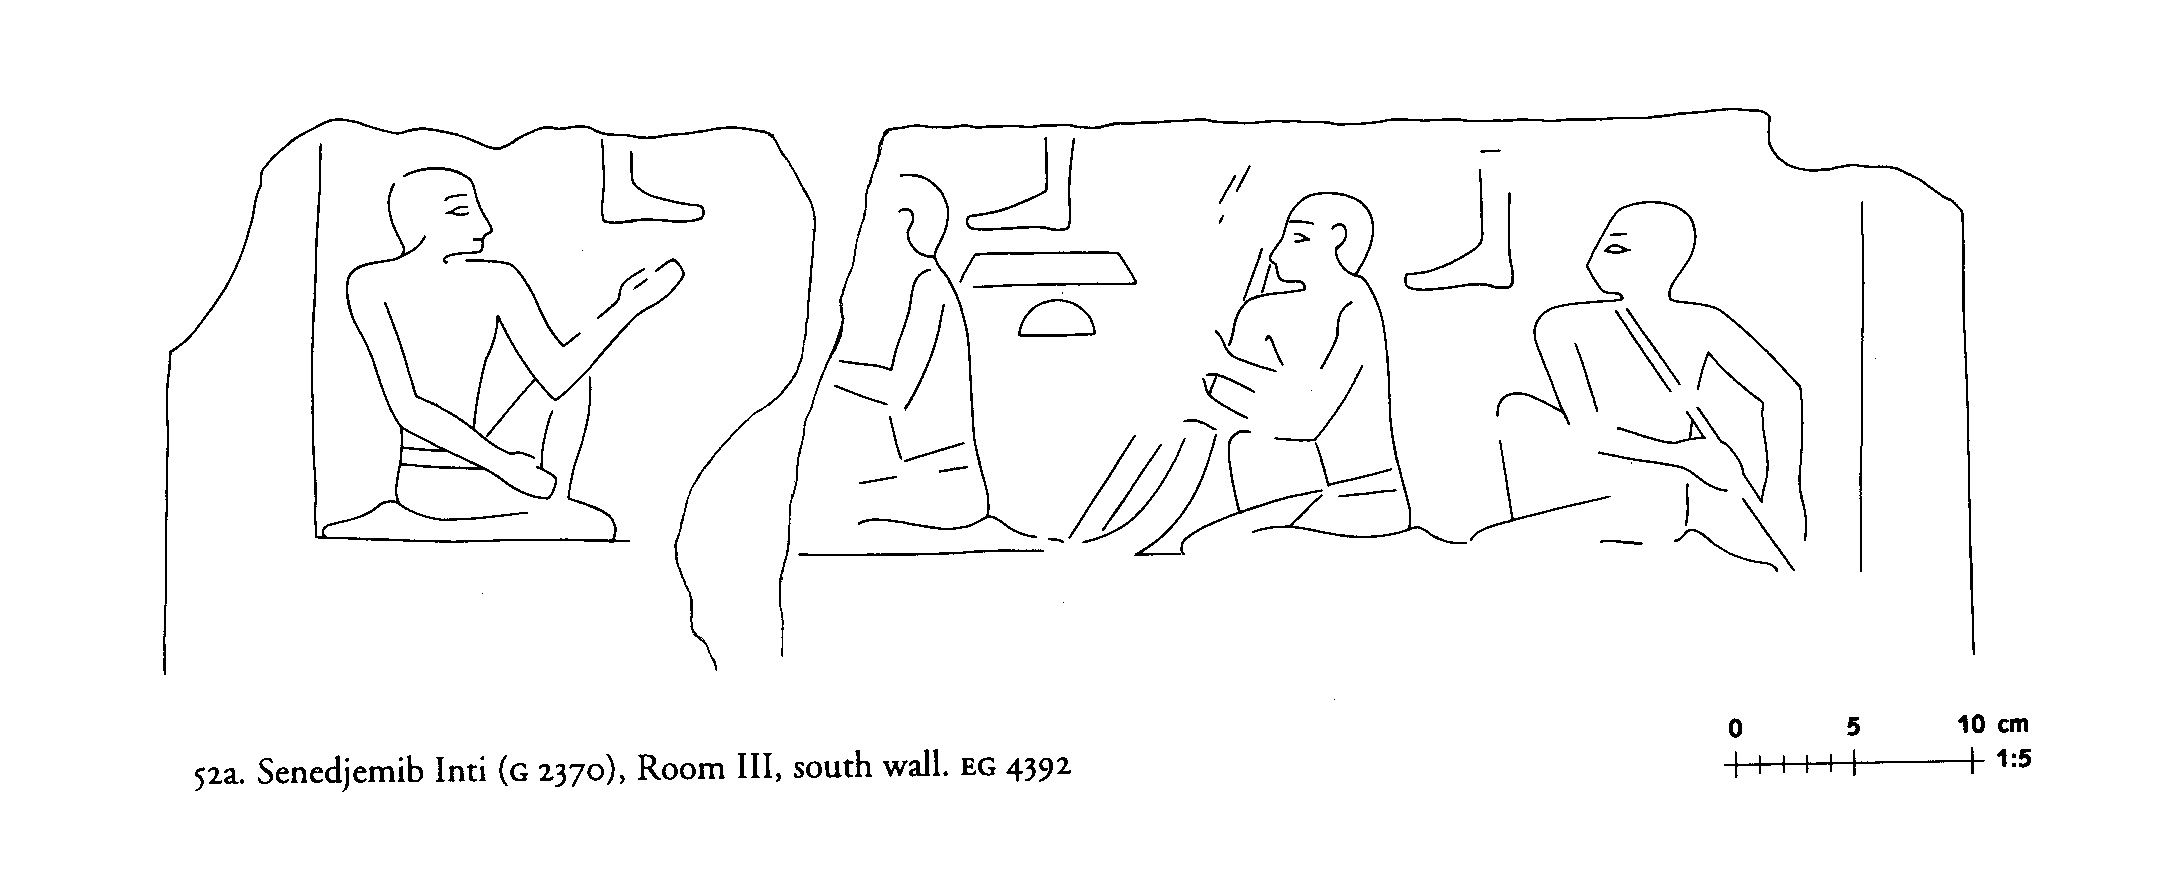 Drawings: G 2370: relief from Room III, S wall